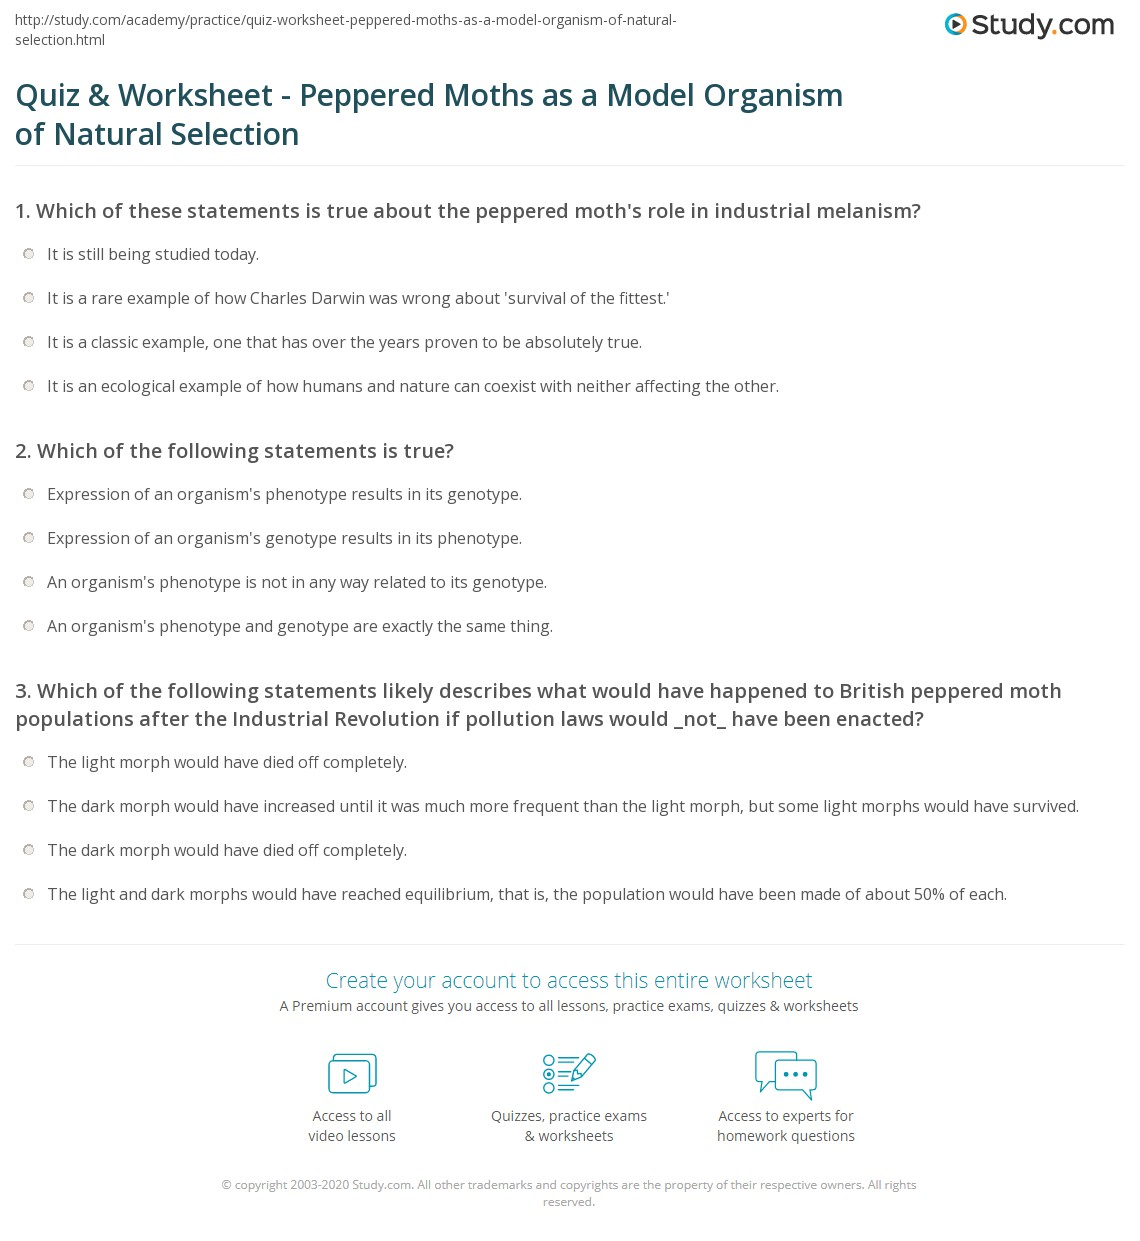 Quiz & Worksheet - Peppered Moths as a Model Organism of Natural ...